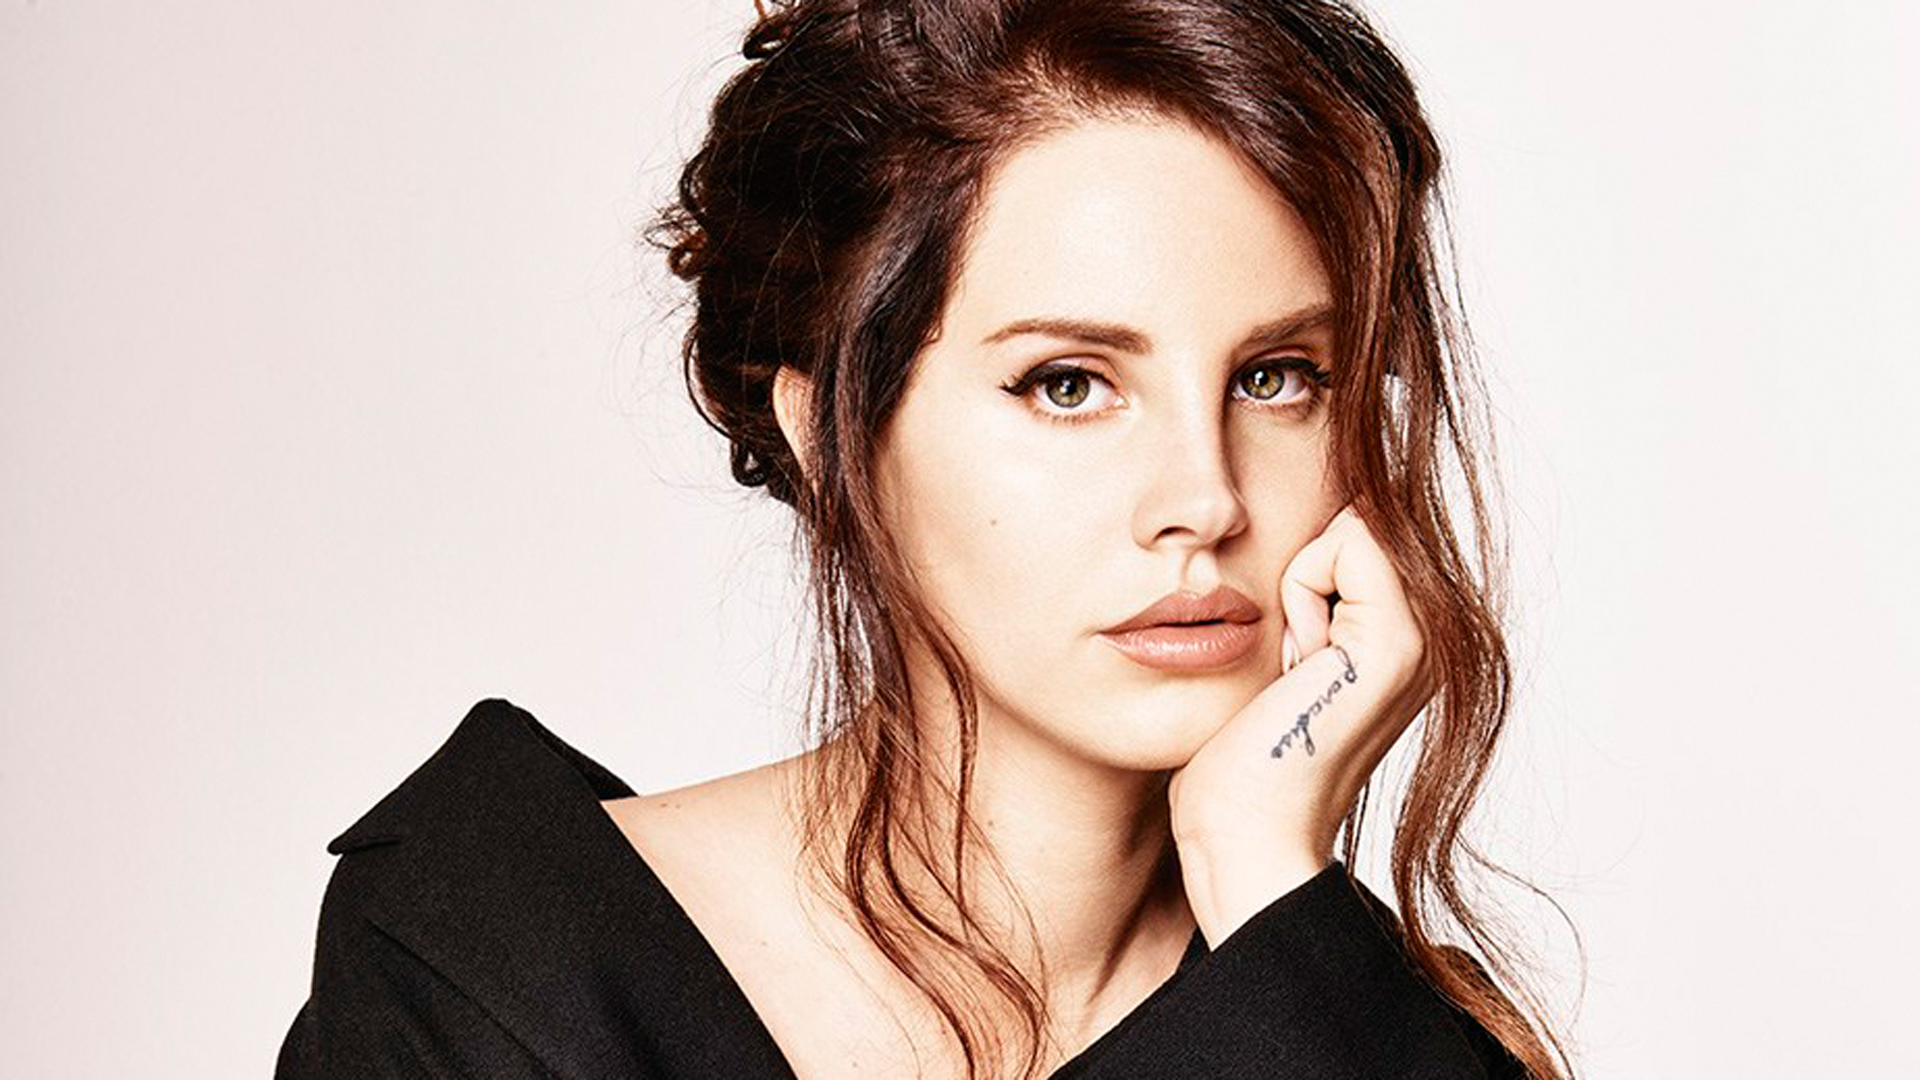 Lana Del Rey Wallpaper Hd